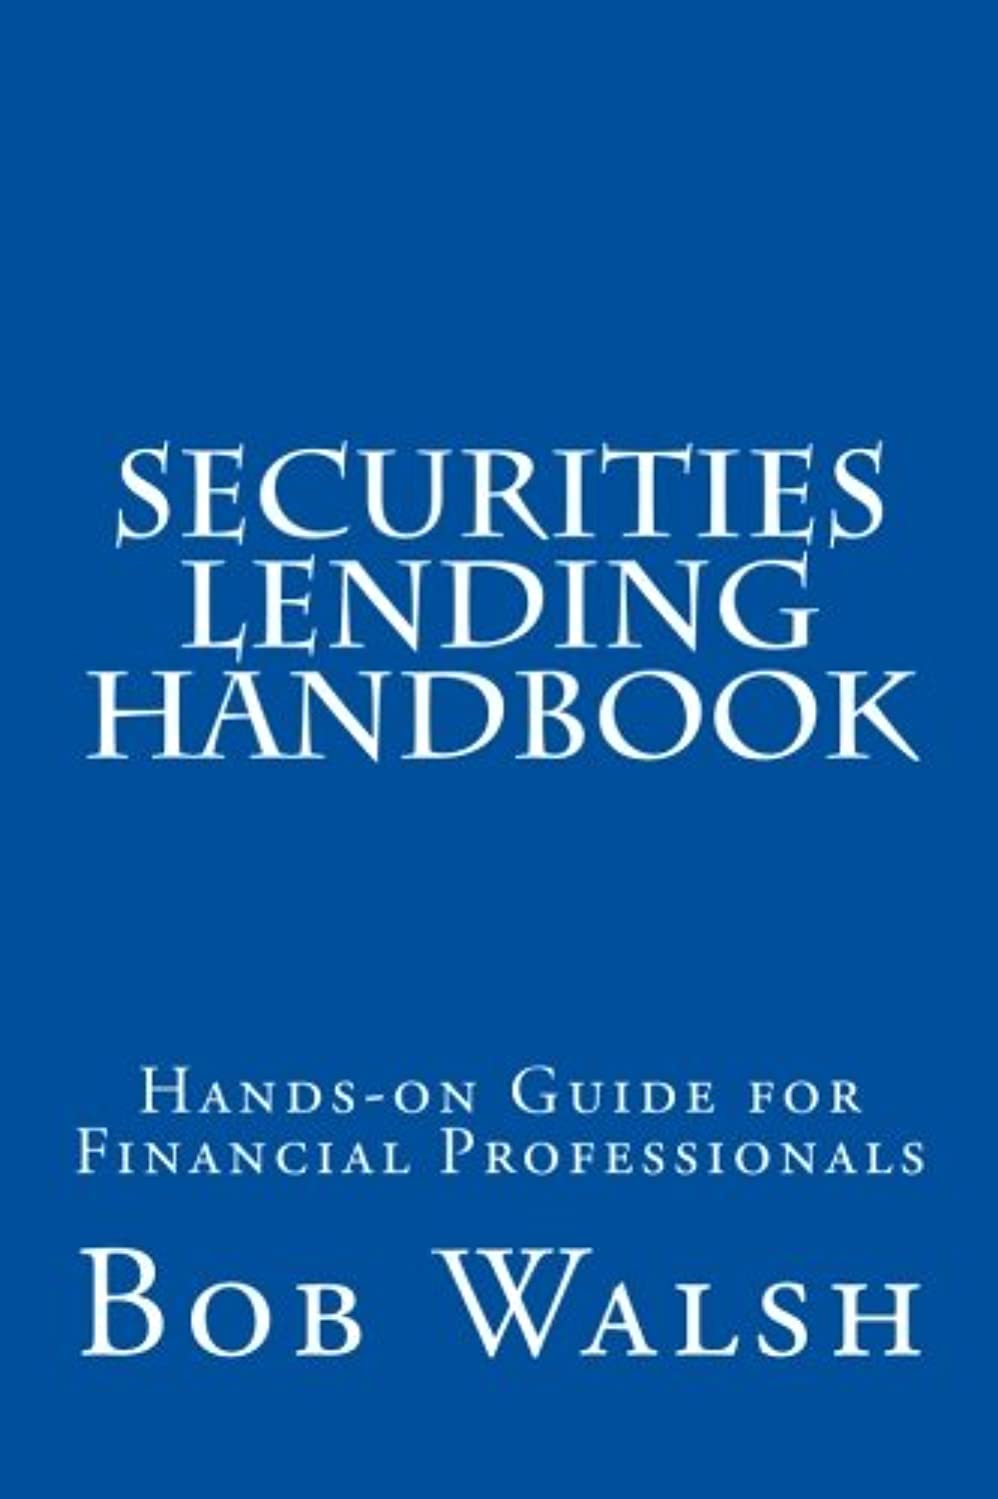 Securities Lending Handbook: Hands-on Guide For Financial Professionals